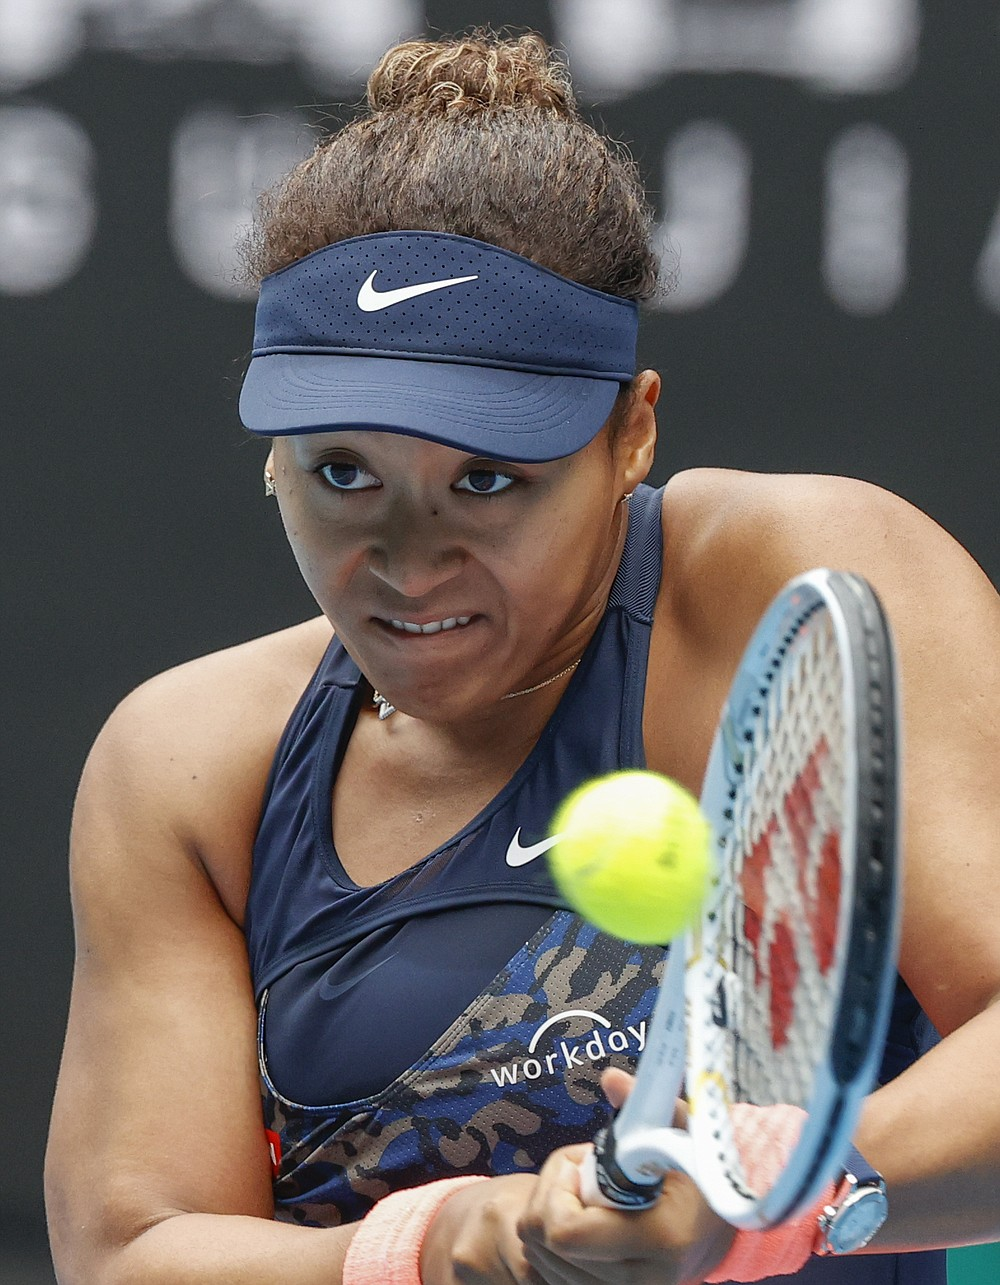 Japan's Naomi Osaka makes a backhand return to Russia's Anastasia Pavlyuchenkova during their first round match at the Australian Open tennis championship in Melbourne, Australia, Monday, Feb. 8, 2021.(AP Photo/Rick Rycroft)